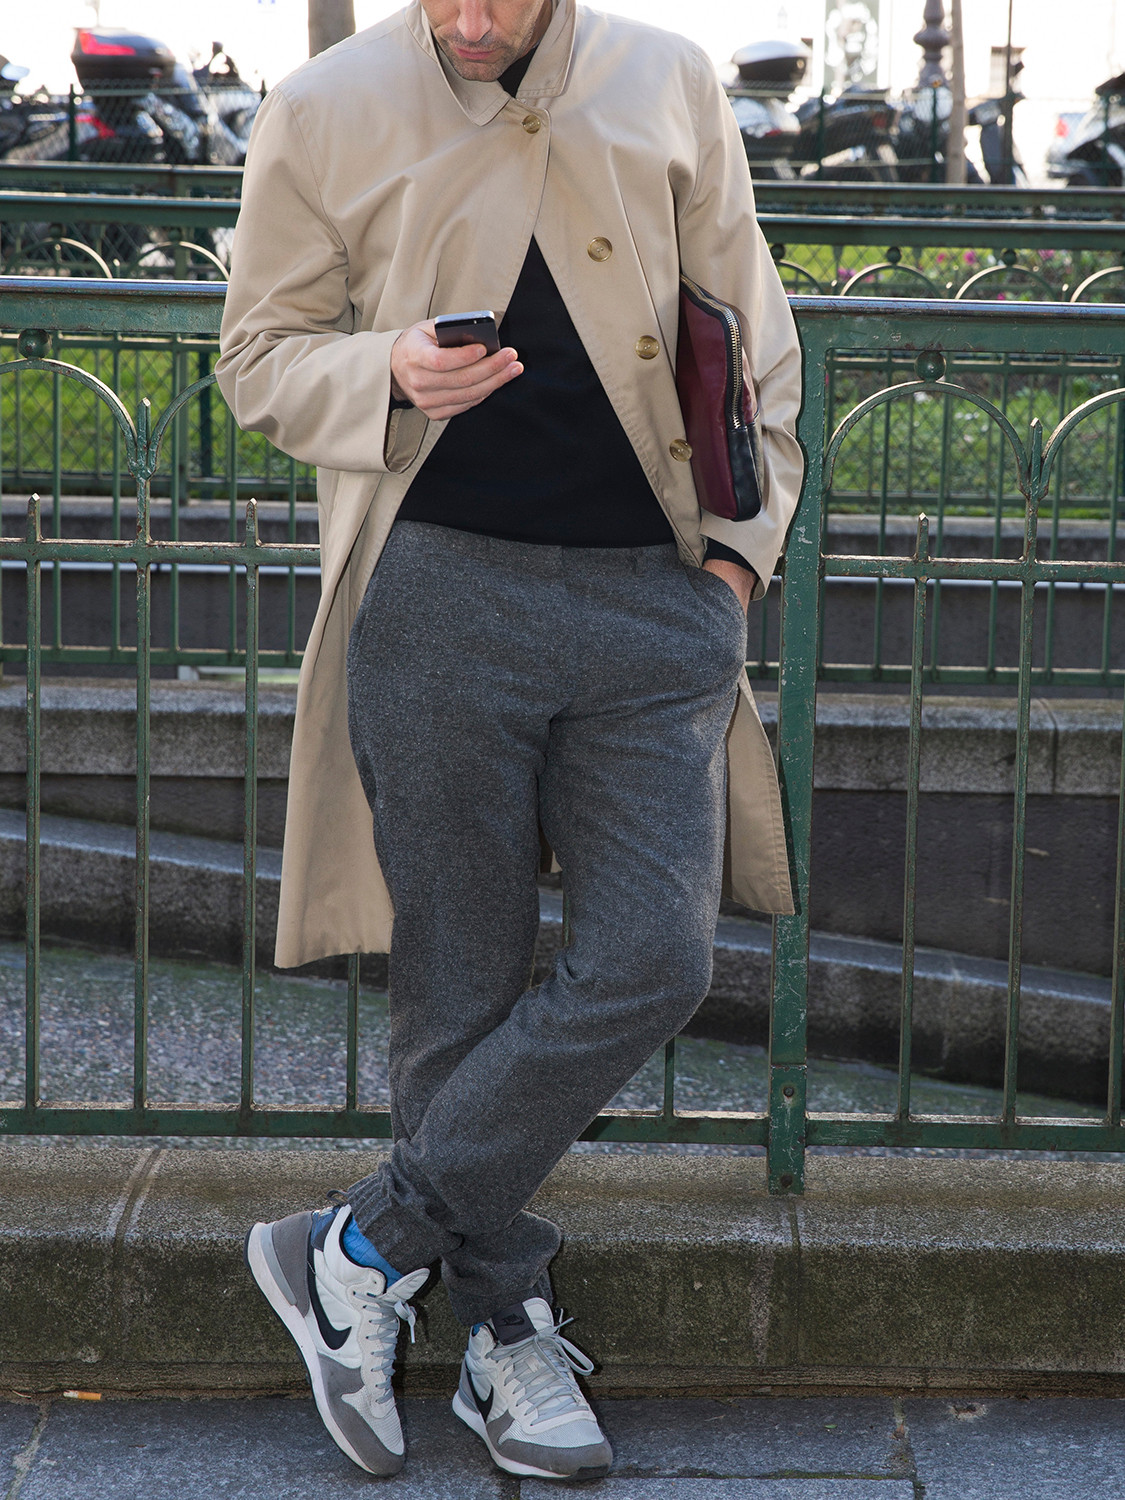 Men's outfit idea for 2021 with neutral trench coat, black crew neck t-shirt, grey sweatpants, neutral sneakers. Suitable for spring and fall.